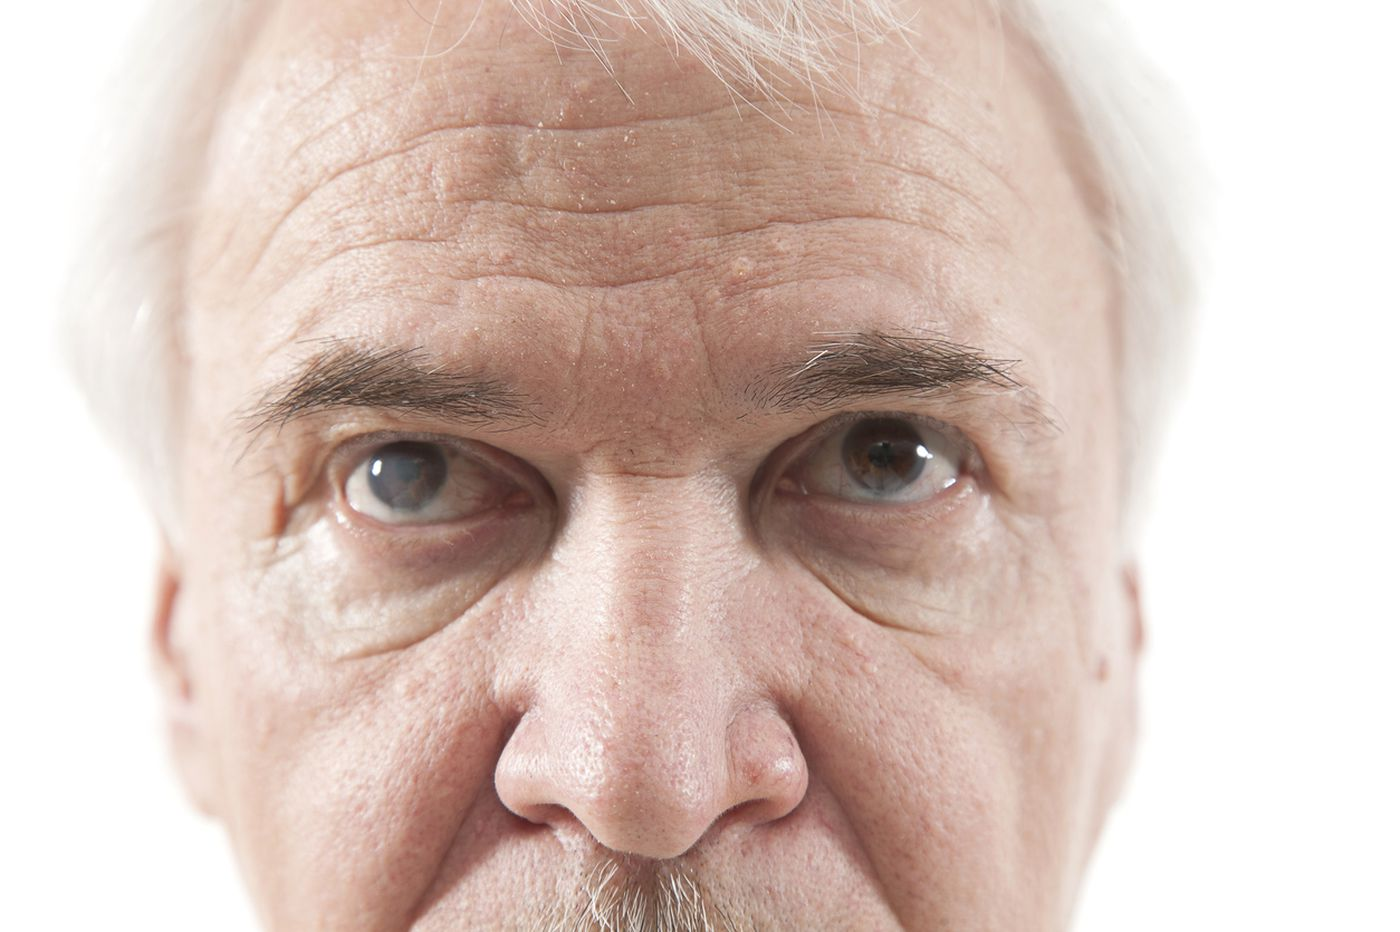 Q&A: Can cataracts really affect how you see color?